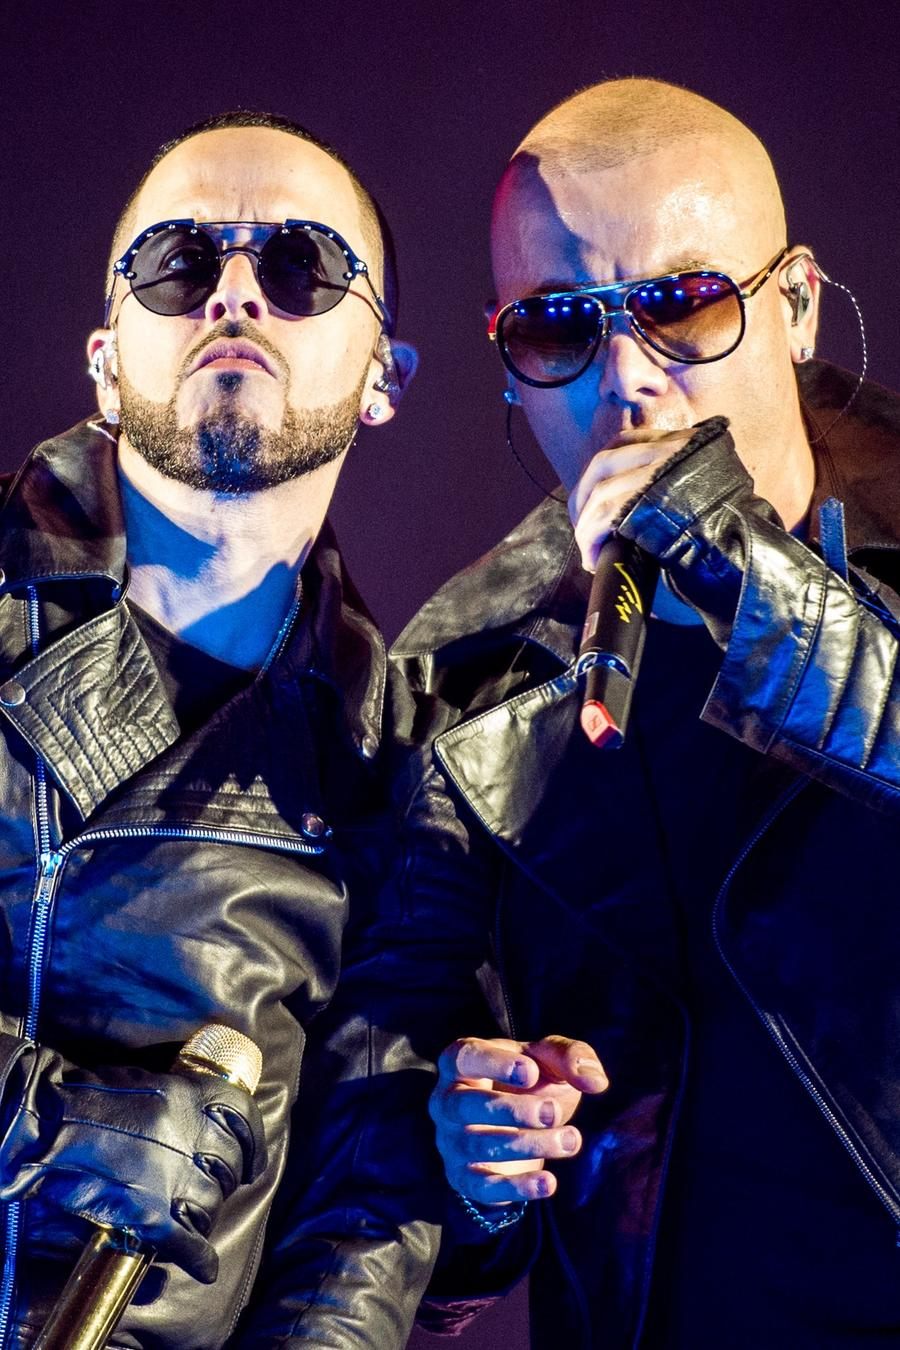 Wisin and Yandel performing live